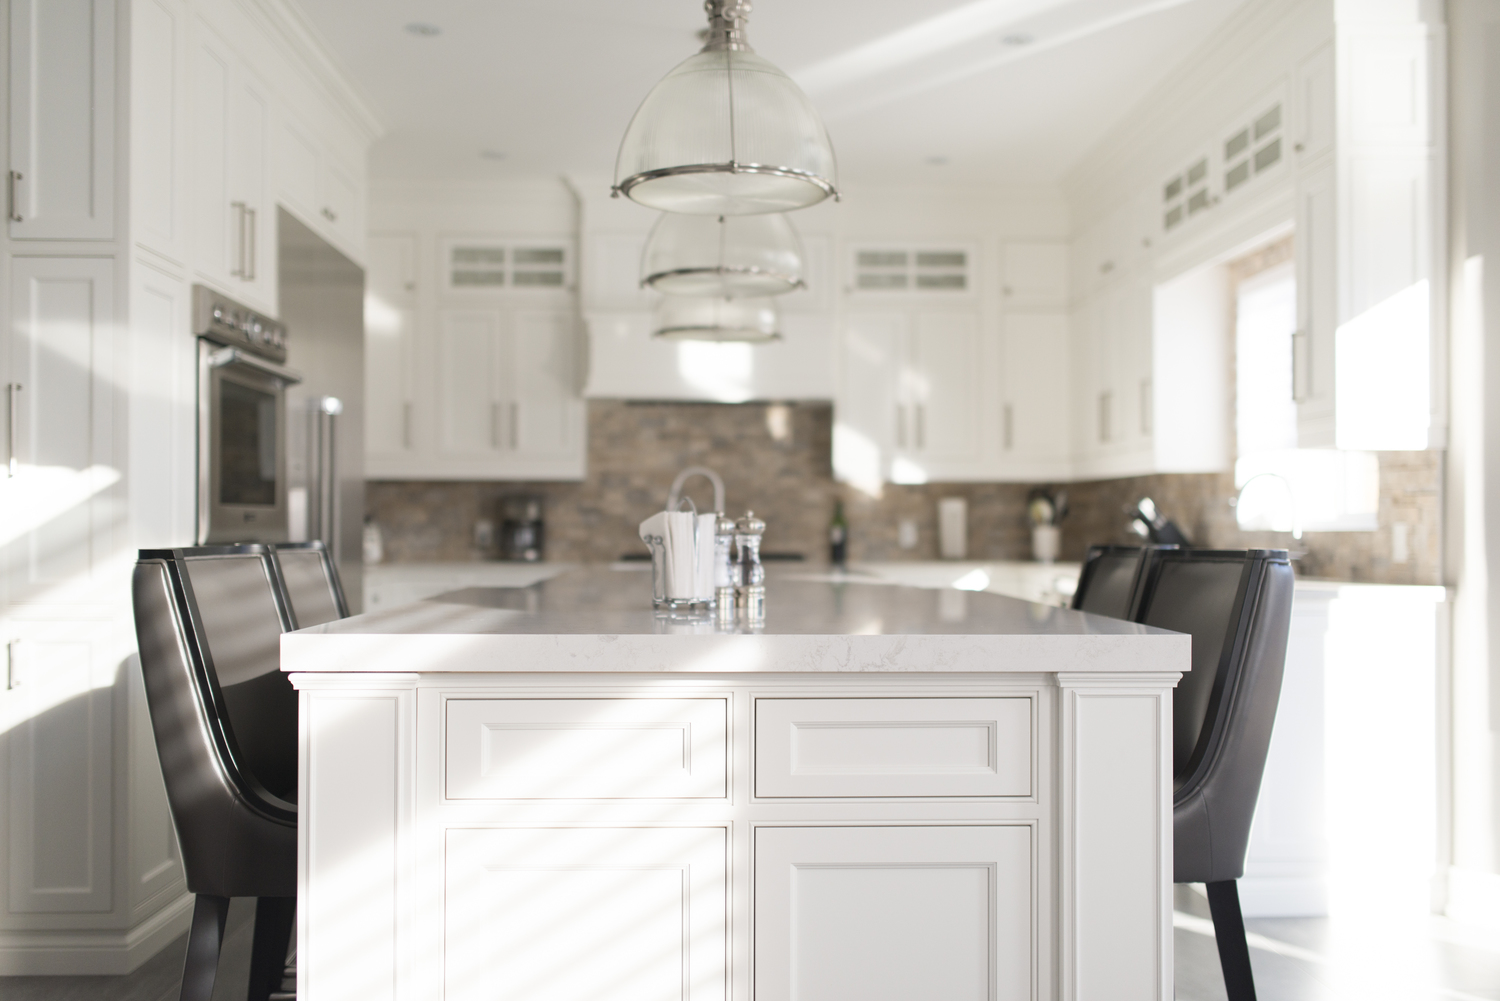 Kitchens — BLISS HOME INNOVATIONS